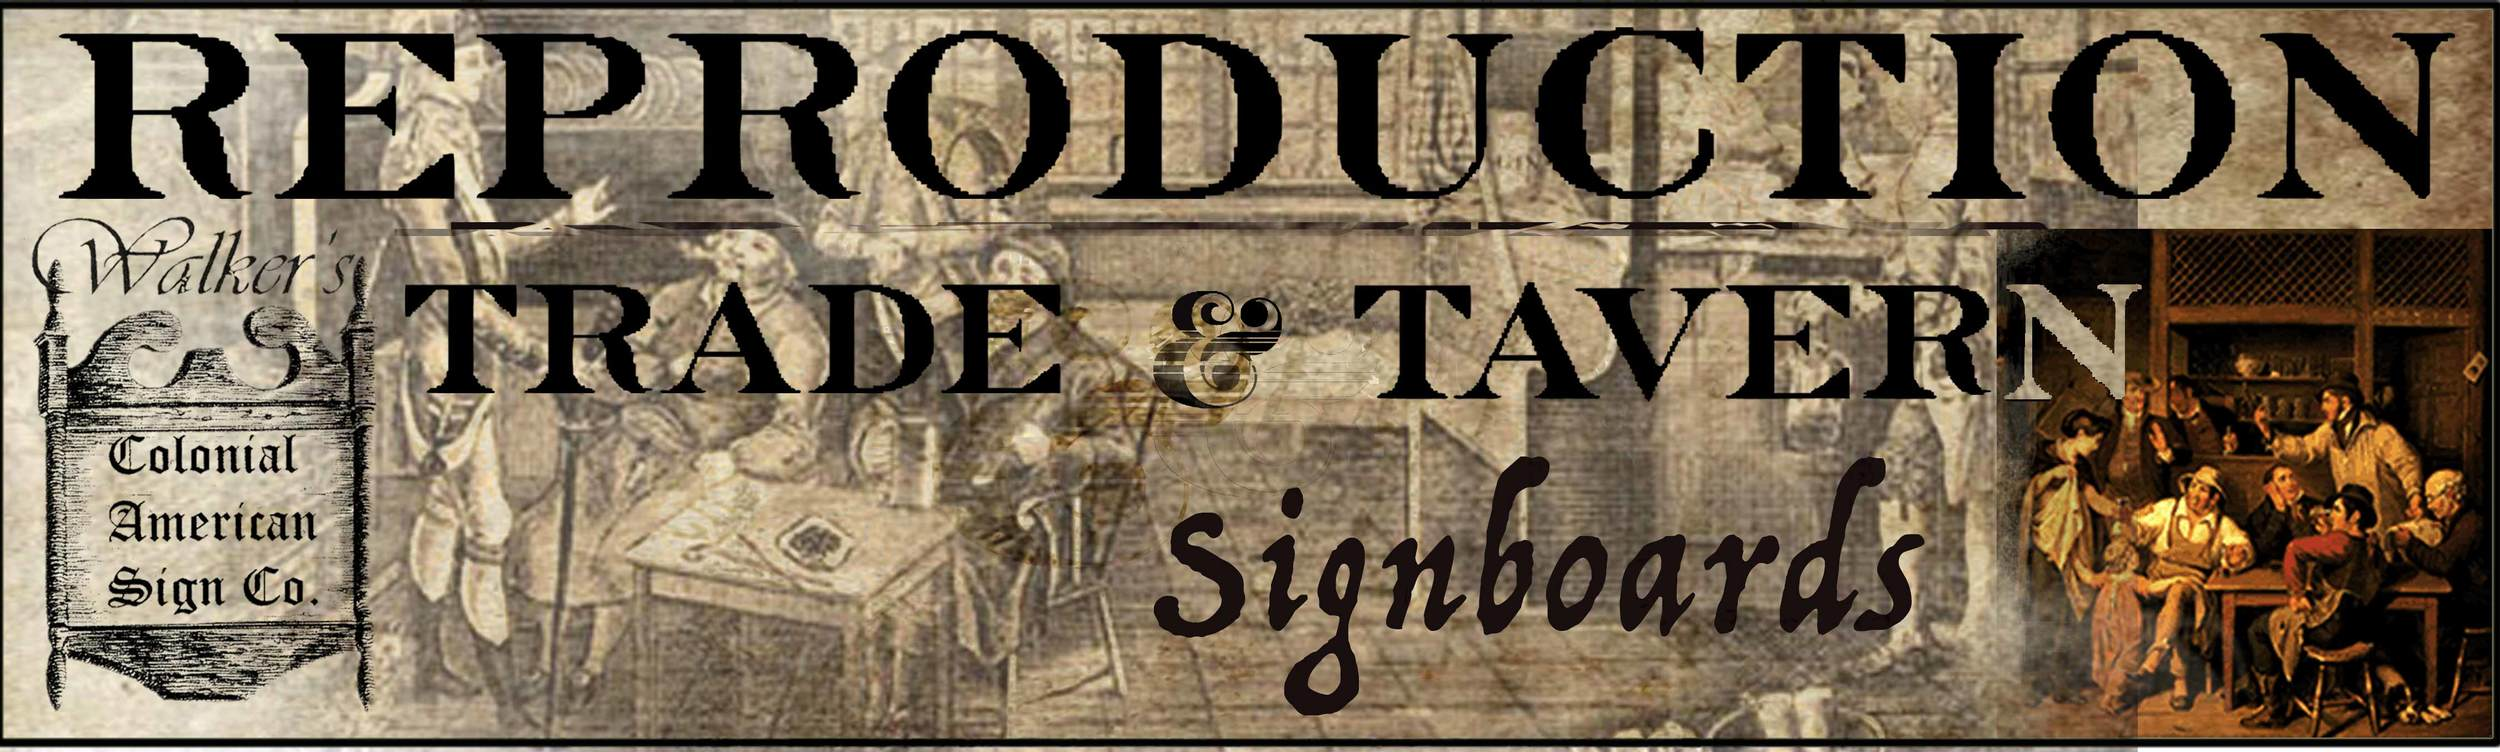 header_repro-tavern-trade_colonial-american-sign-company.jpg